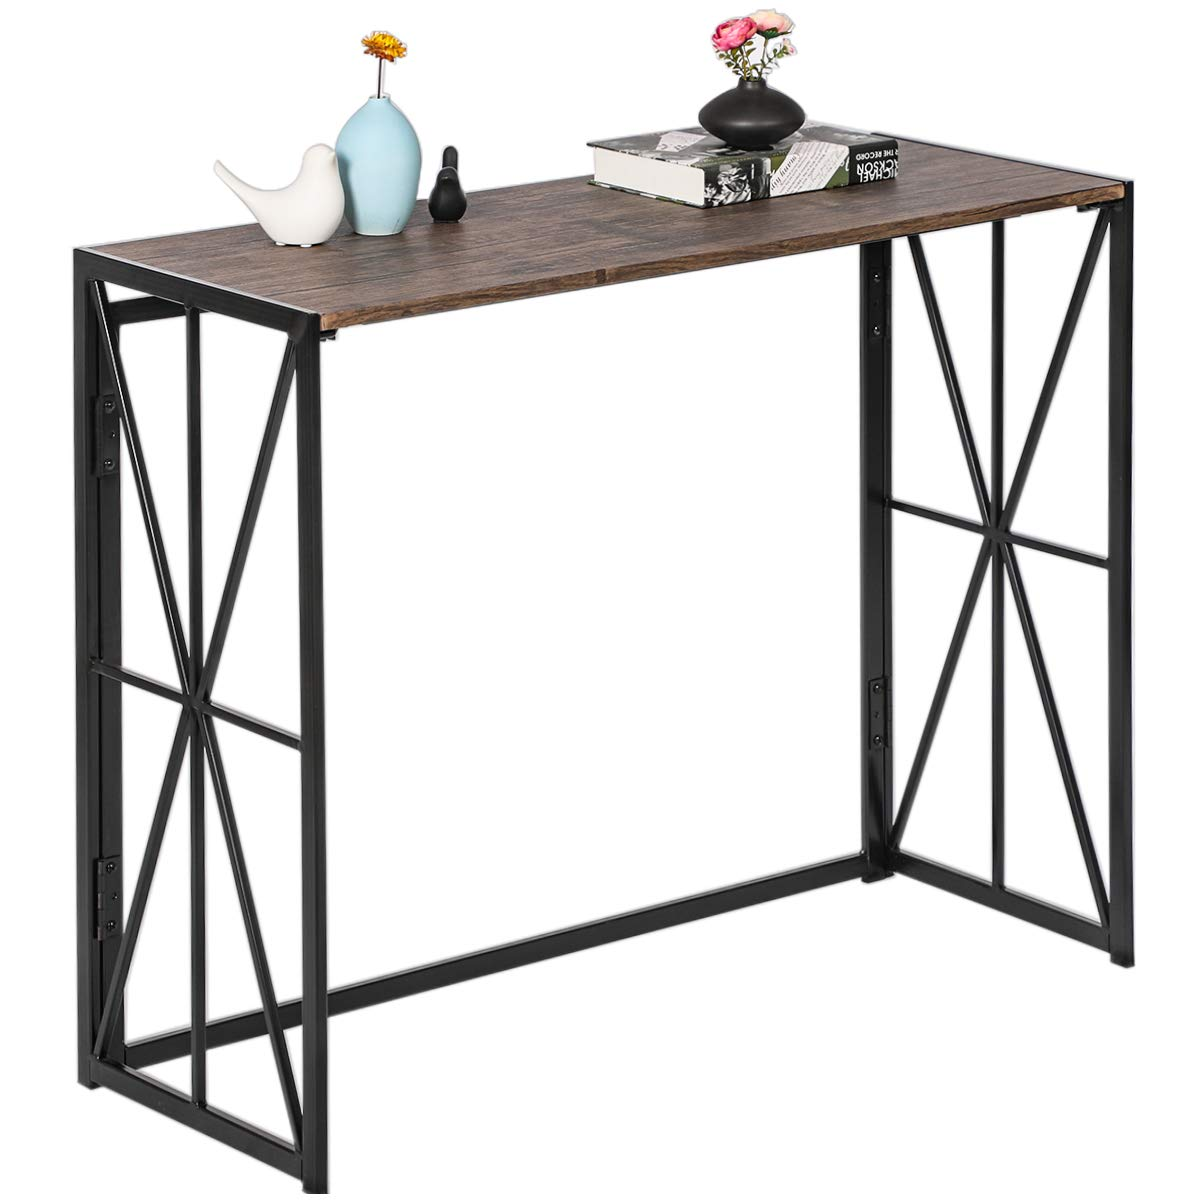 Folding-Console Table, No-Assembly Tall Sofa Entryway Table, 8 Seconds Finish Installation Industrial Hallway Wall Table with Sturdy Metal X-Design HORES/BS, Rustic Brown